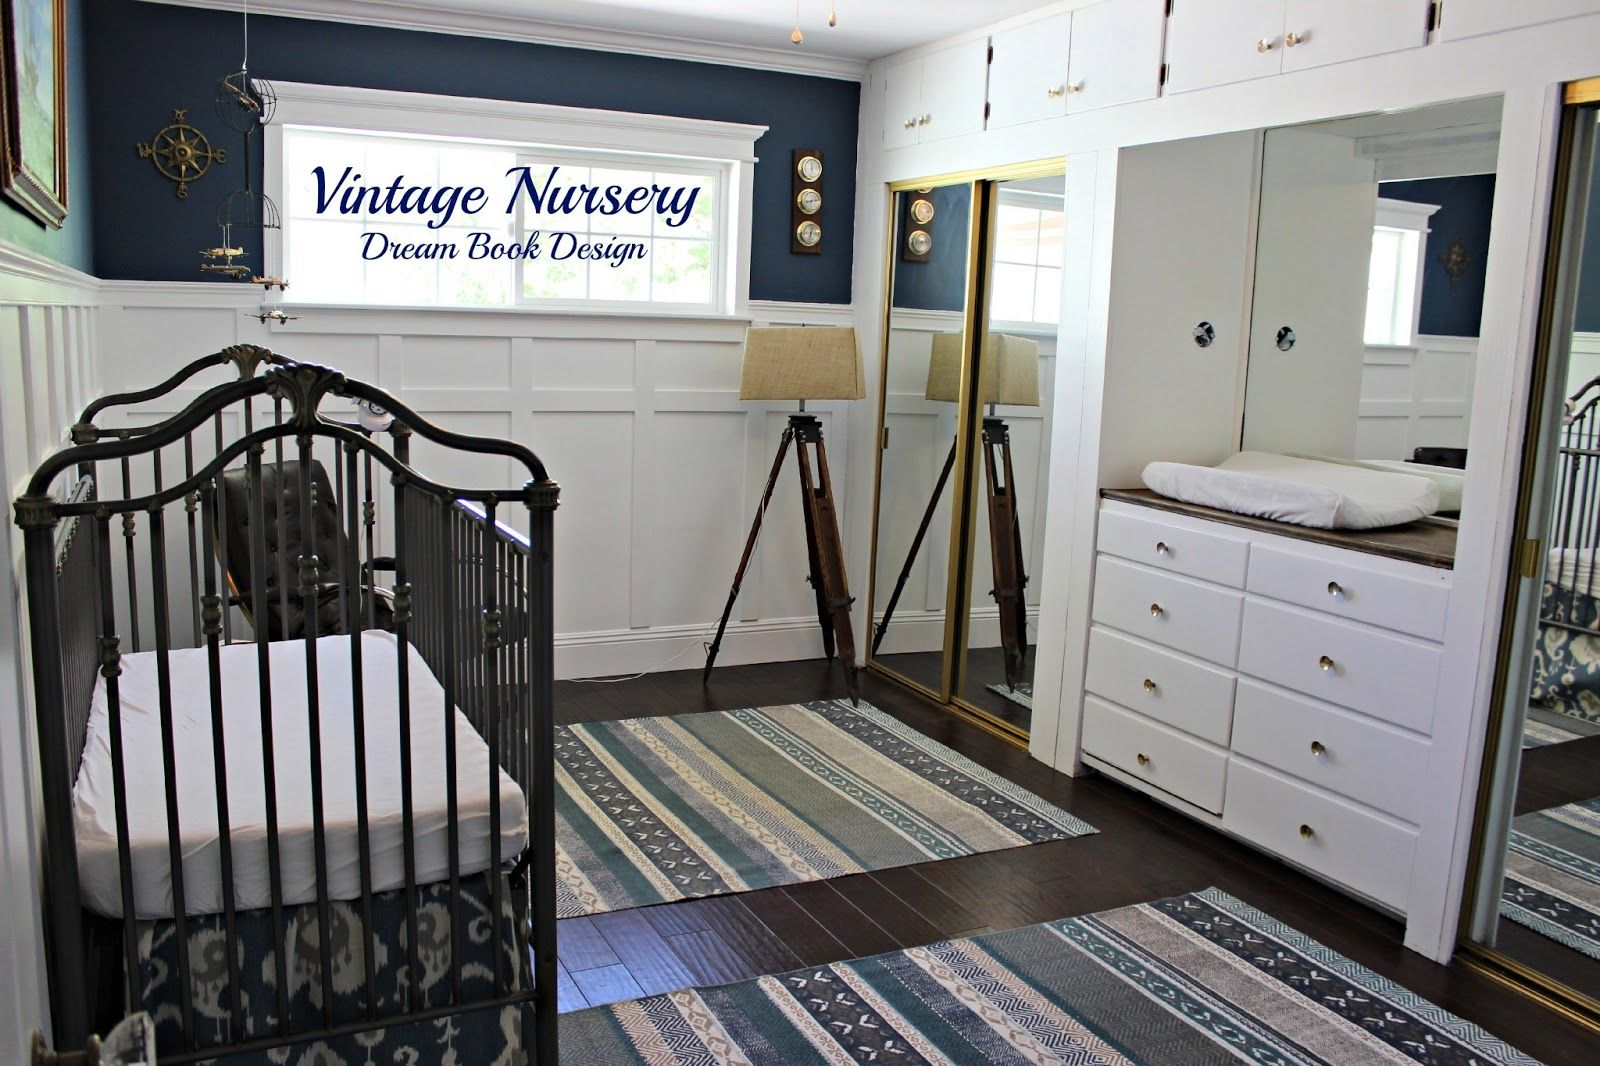 Braylens Vintage Nursery In The New Home - Dream Book Design love the board and batten